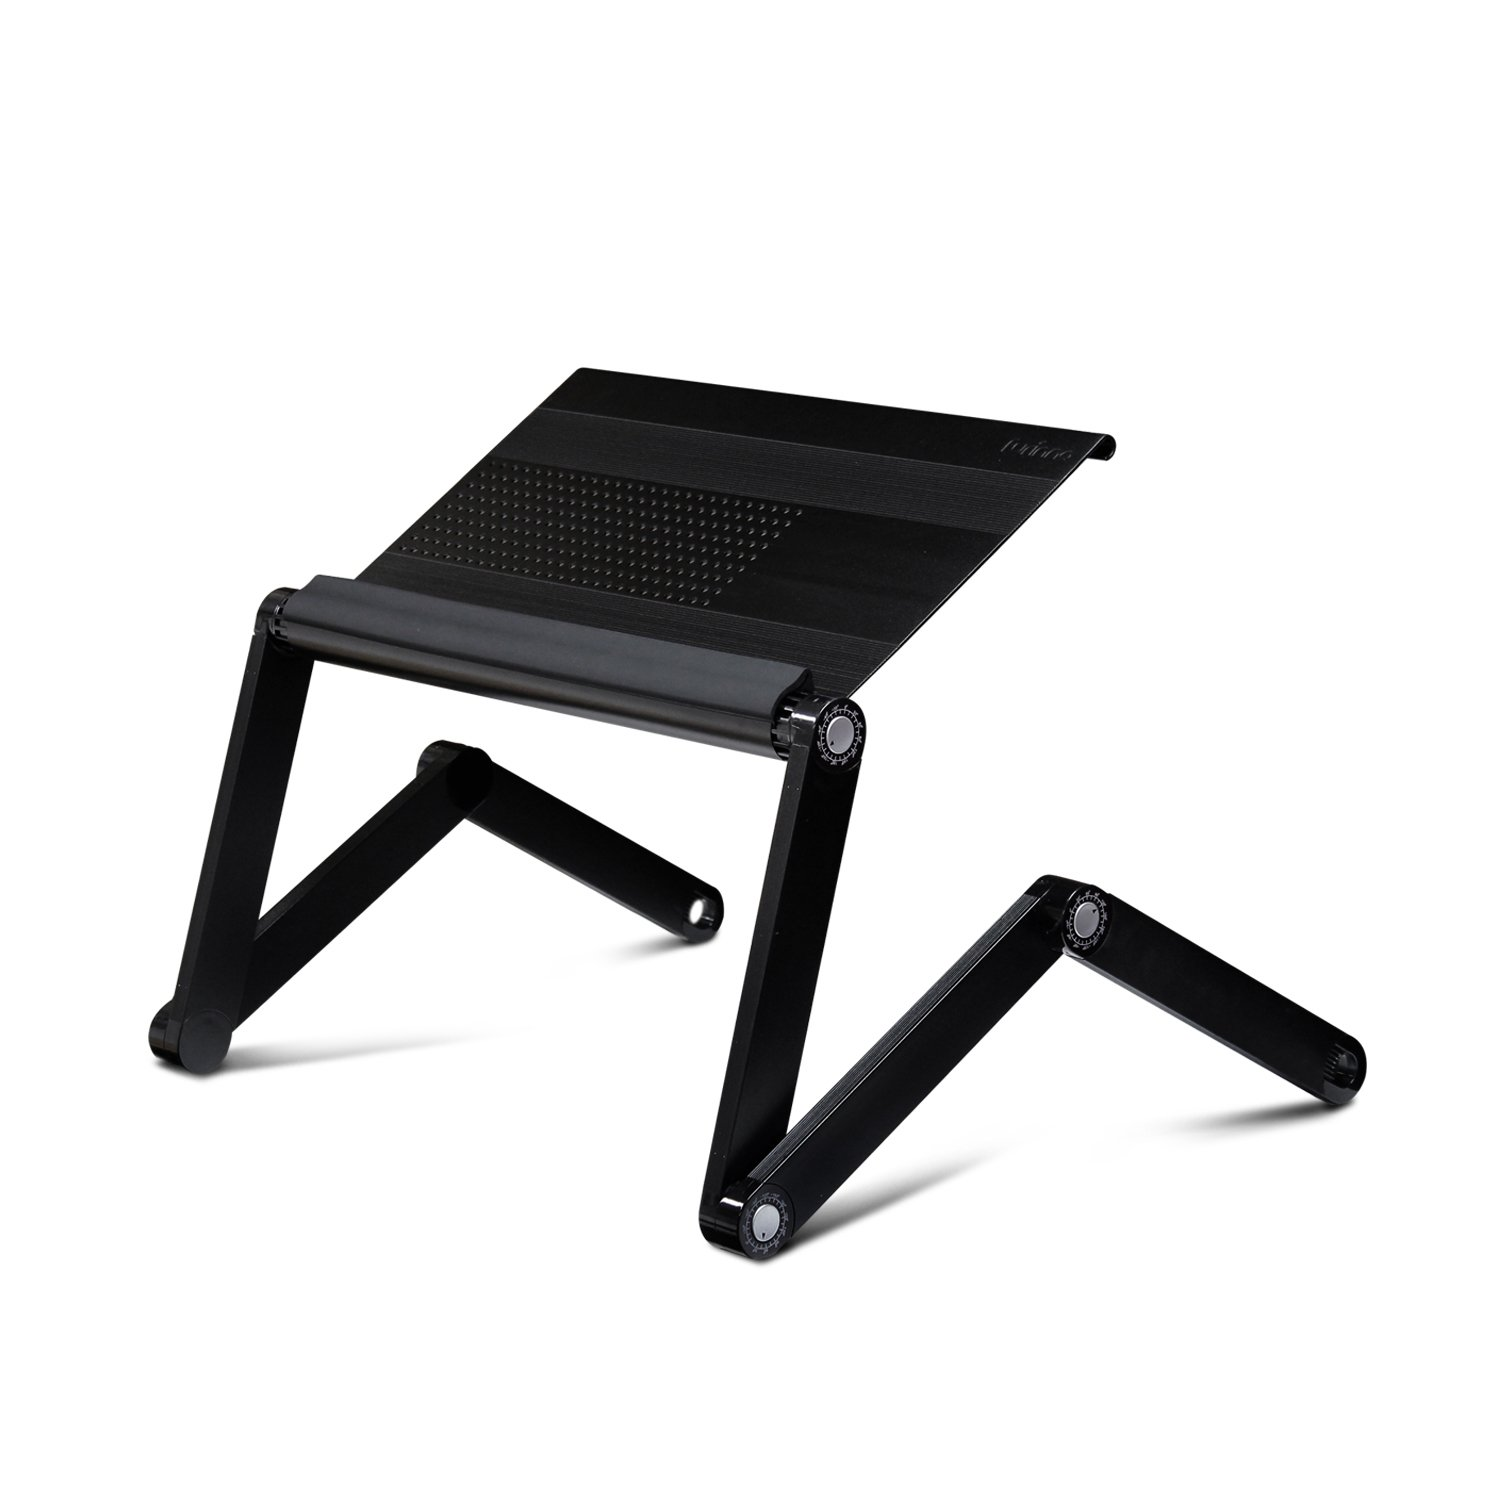 portable havit stand products ajustable ksr laptop desk online mobile adjustable